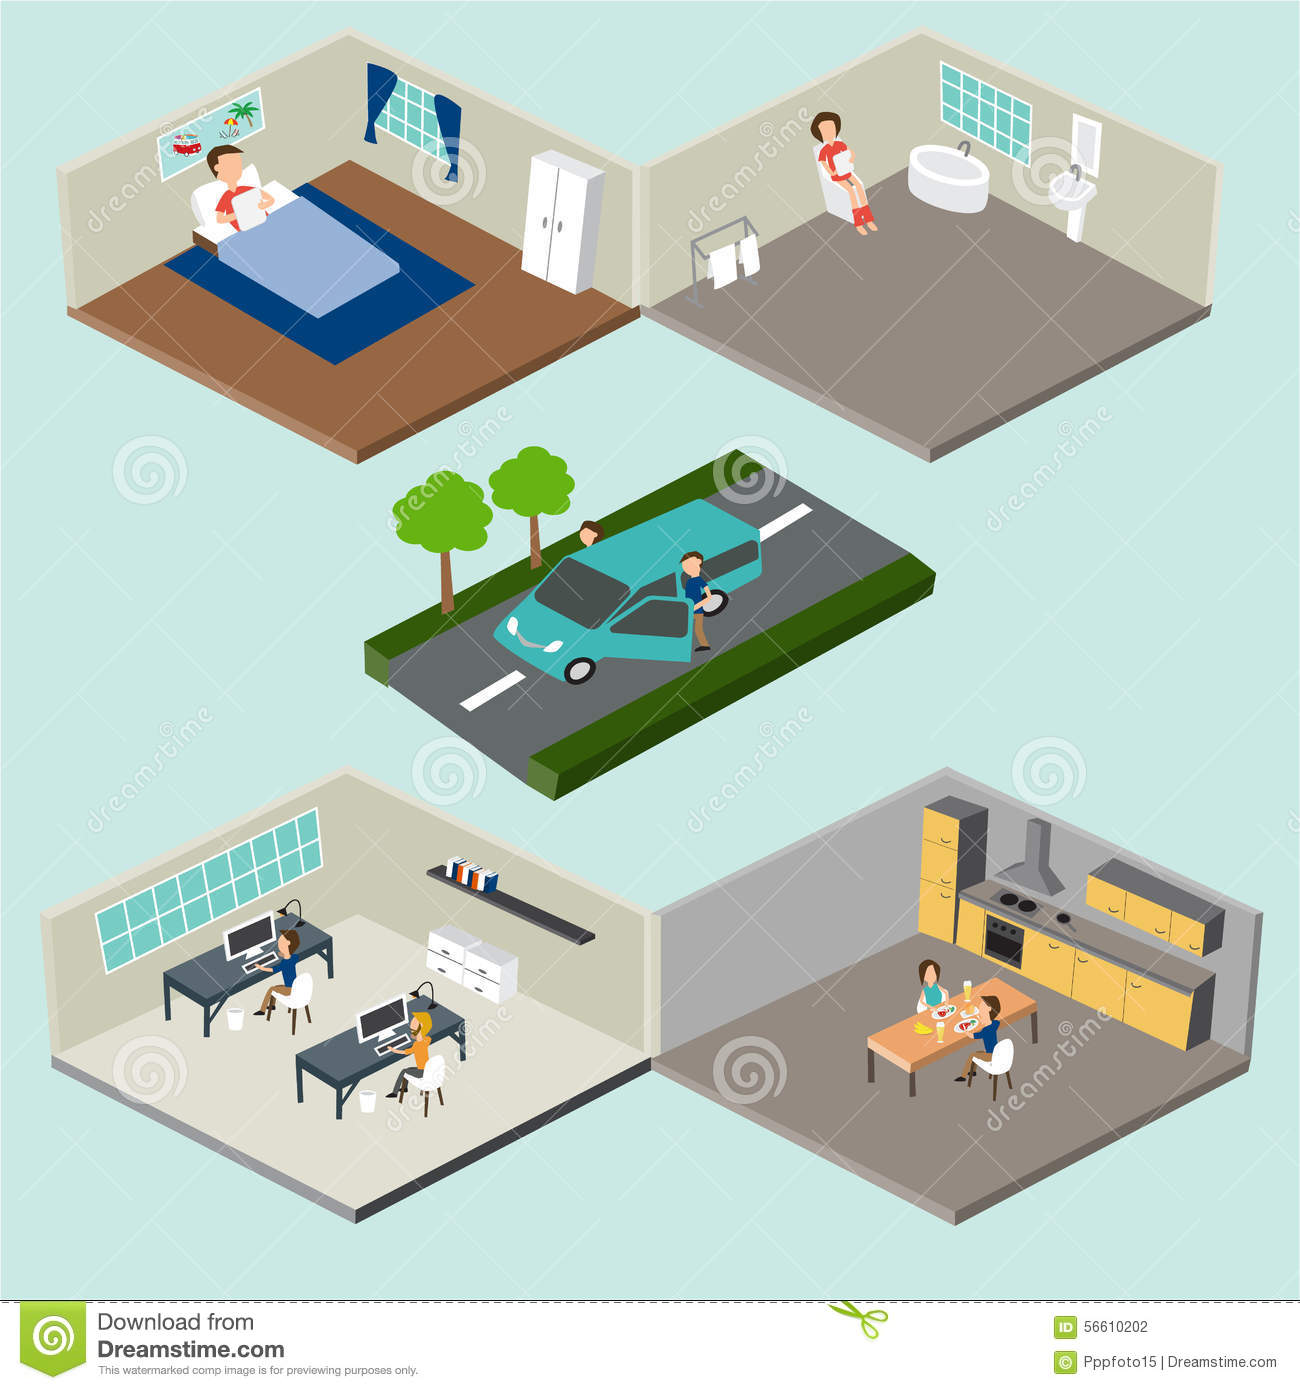 3d Floor Plan Isometric: Flat 3d Isometric Abstract Home And Office Floor Interior